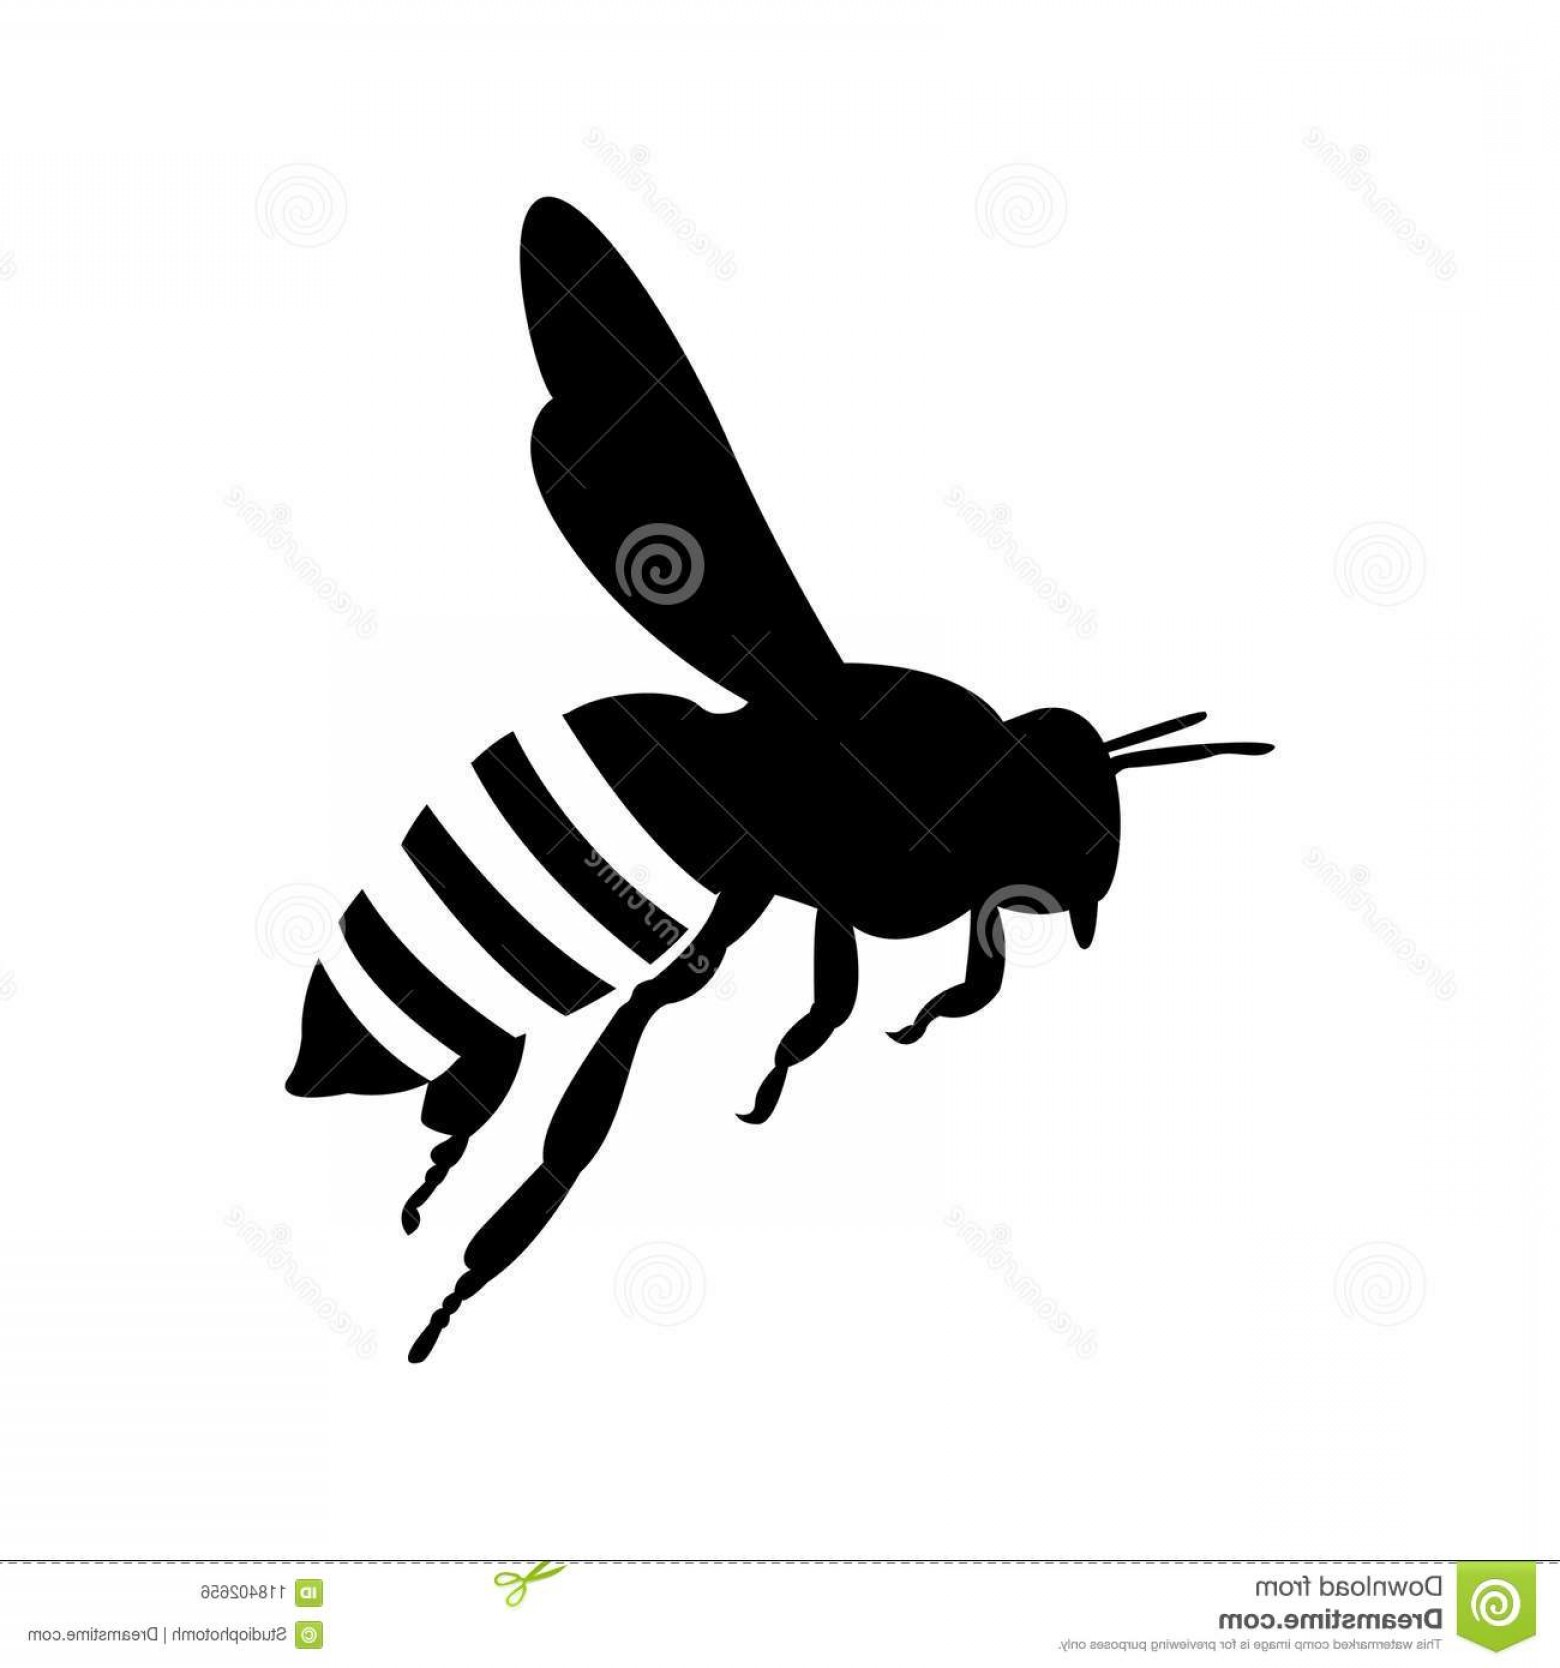 Bee Outline Vector: Flying Honey Bee Silhouette Honey Bee Icon Vector Eps Flying Honey Bee Silhouette Honey Bee Icon Vector Image